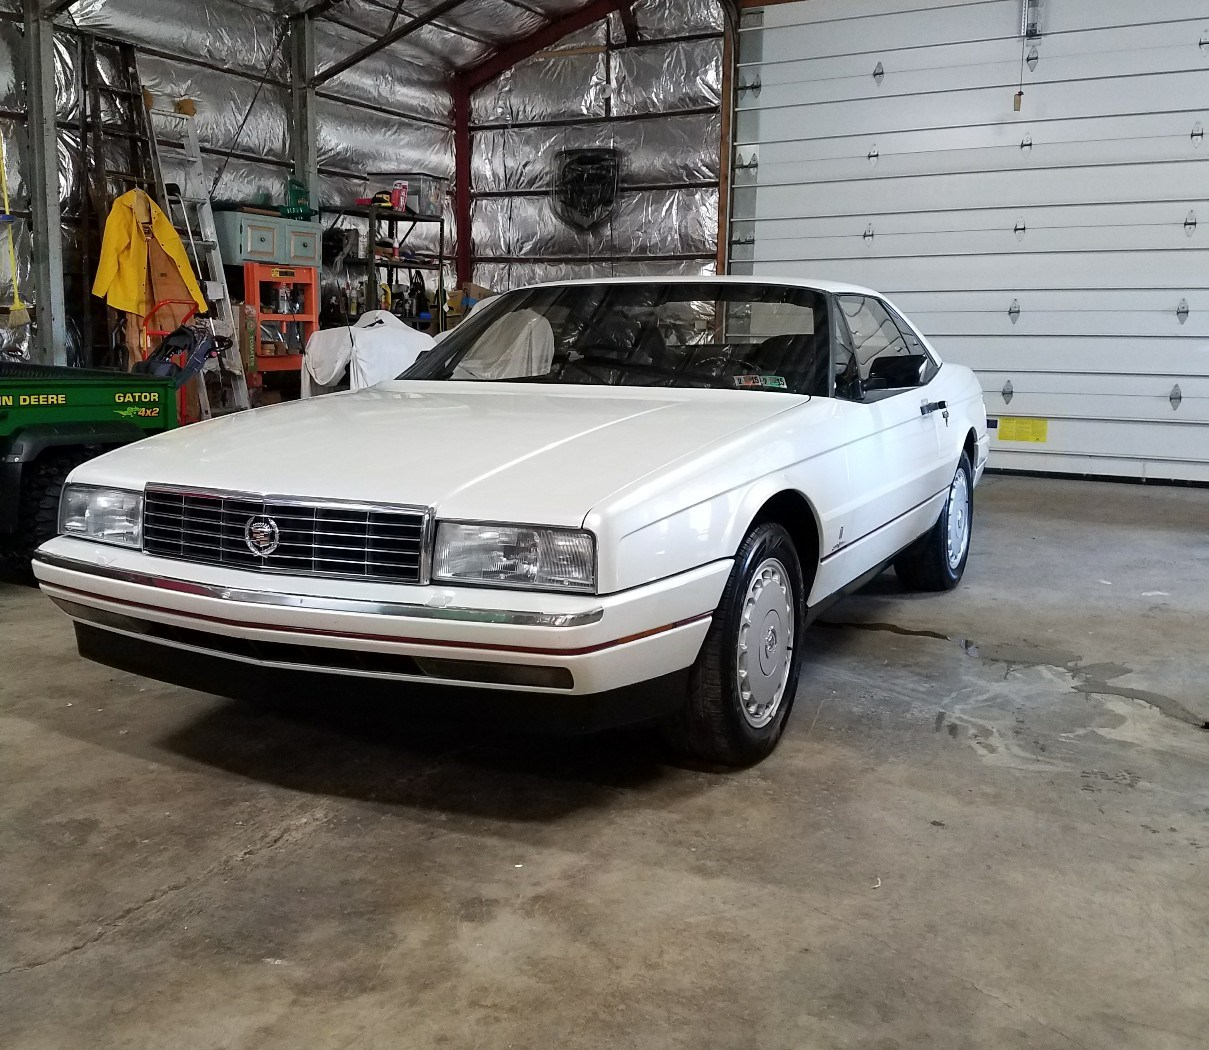 89CadillacAllante